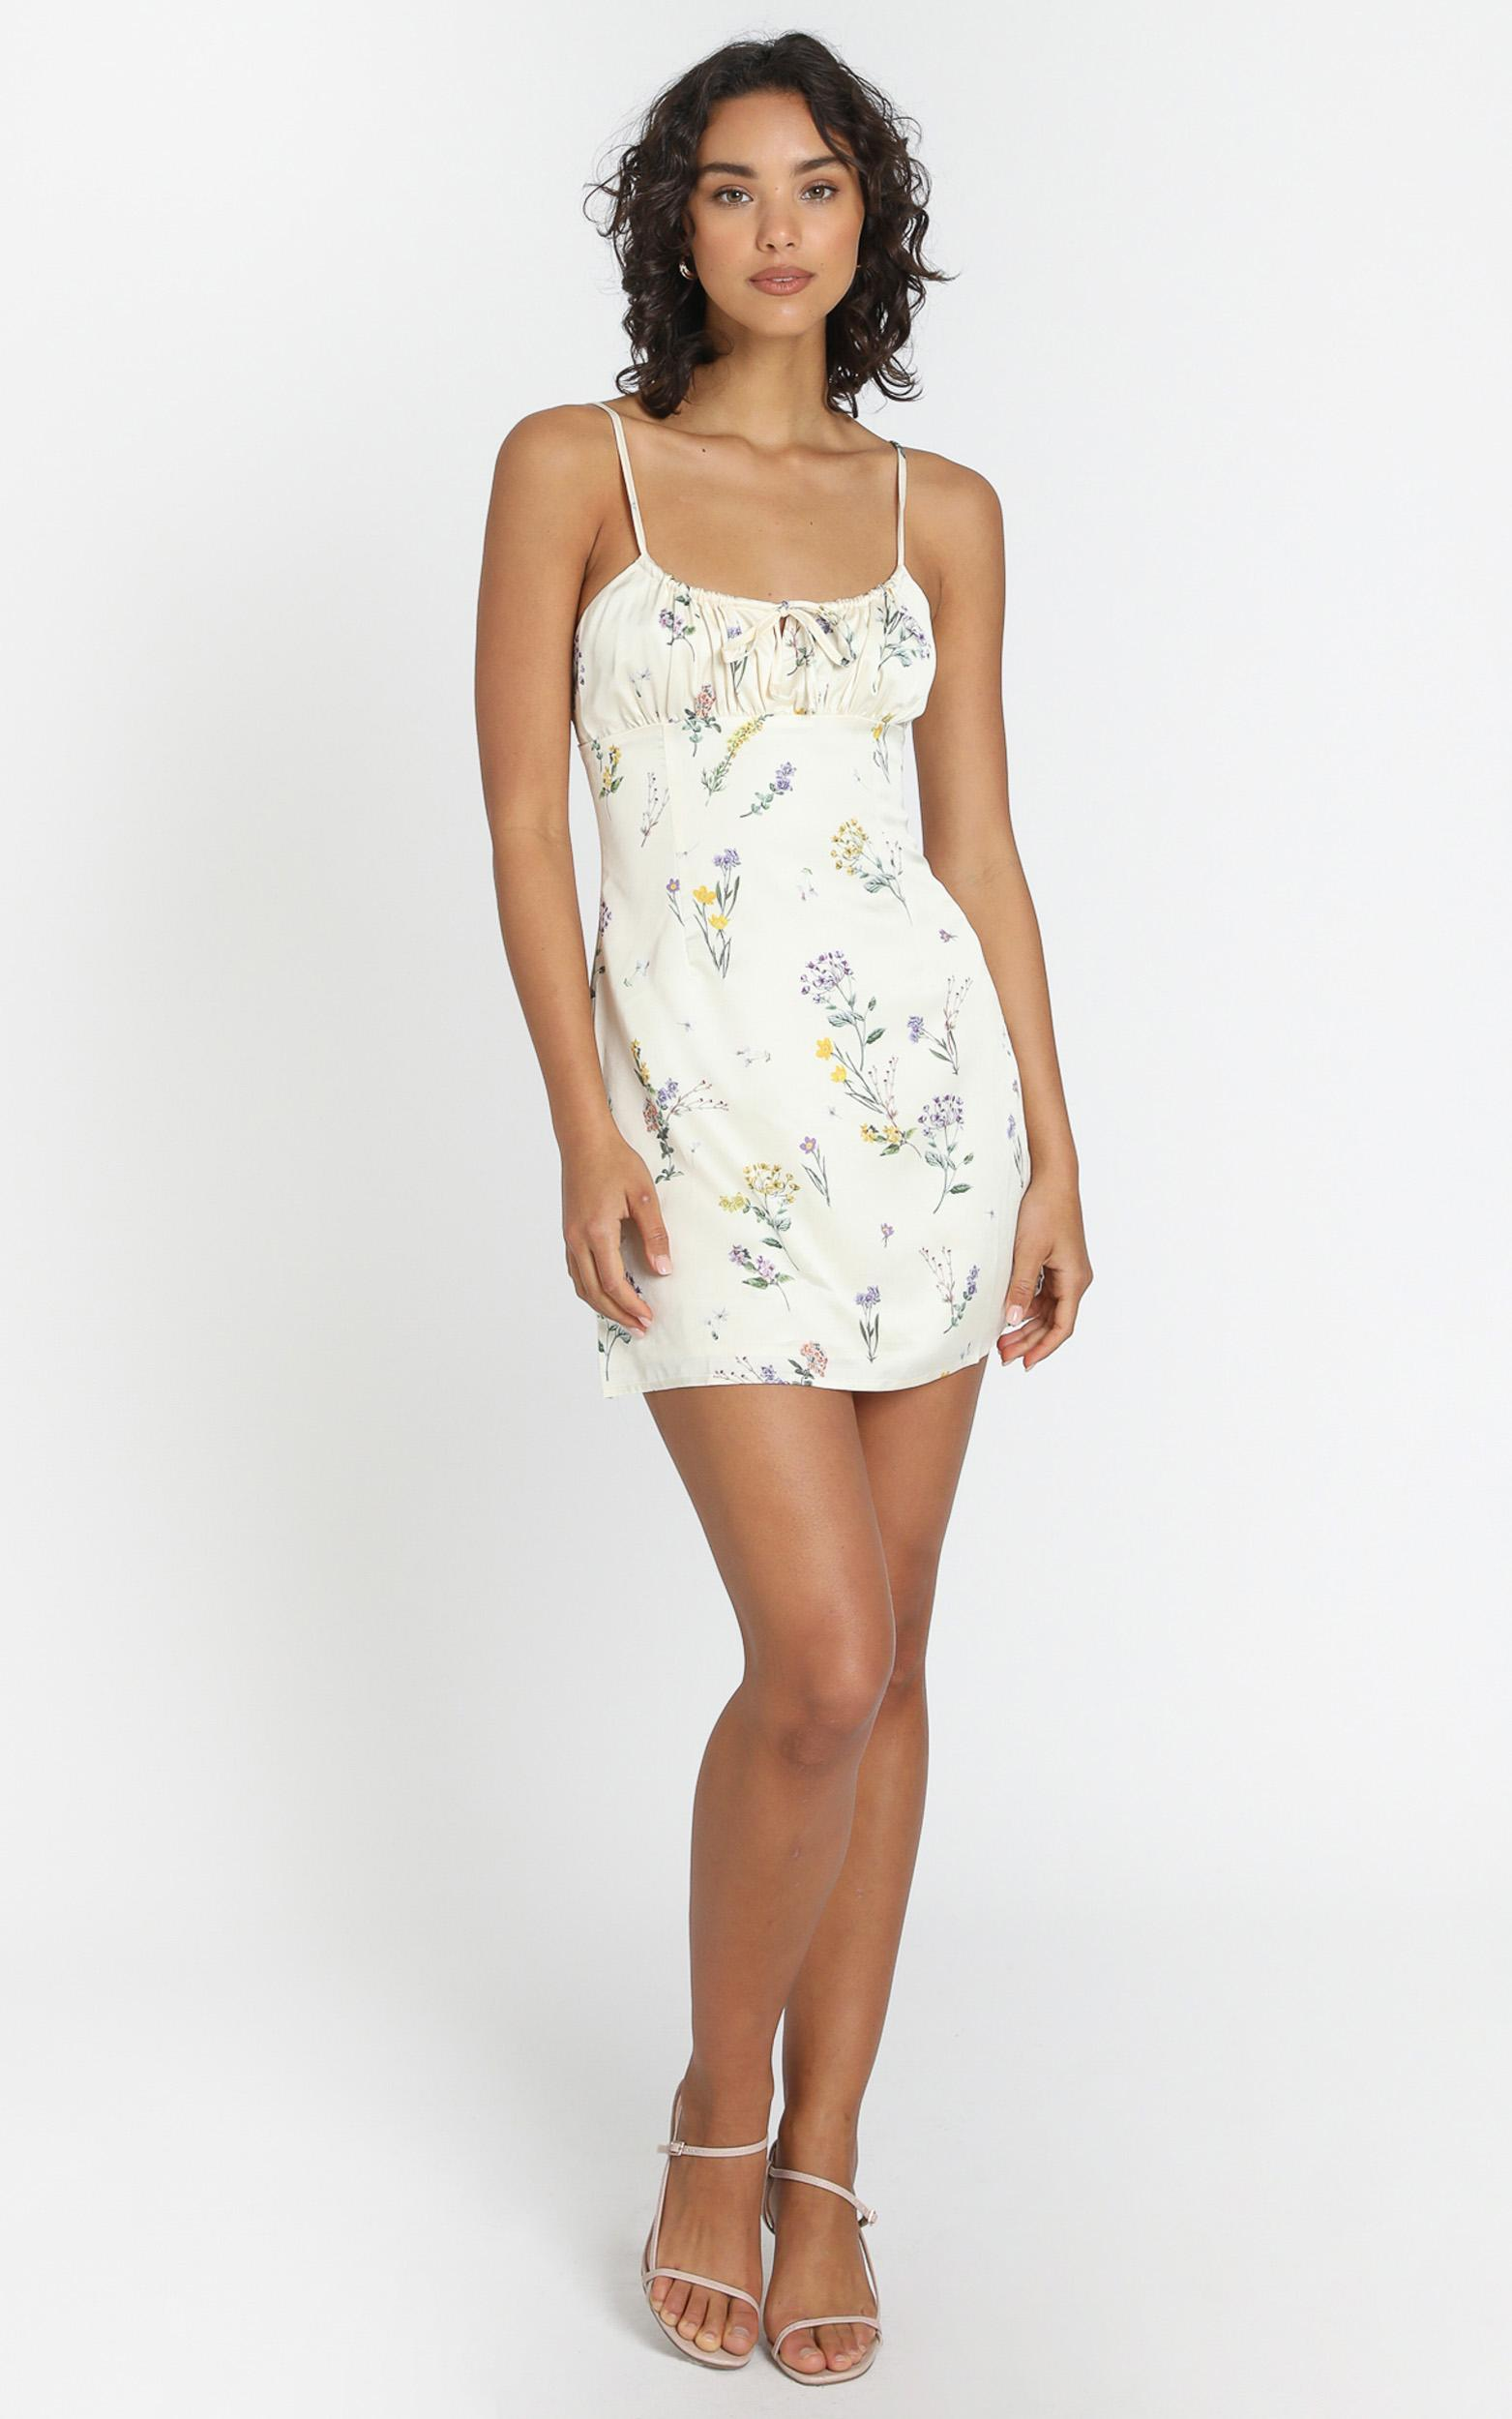 Ive Got You Now Dress in Botanical Floral, Cream, hi-res image number null